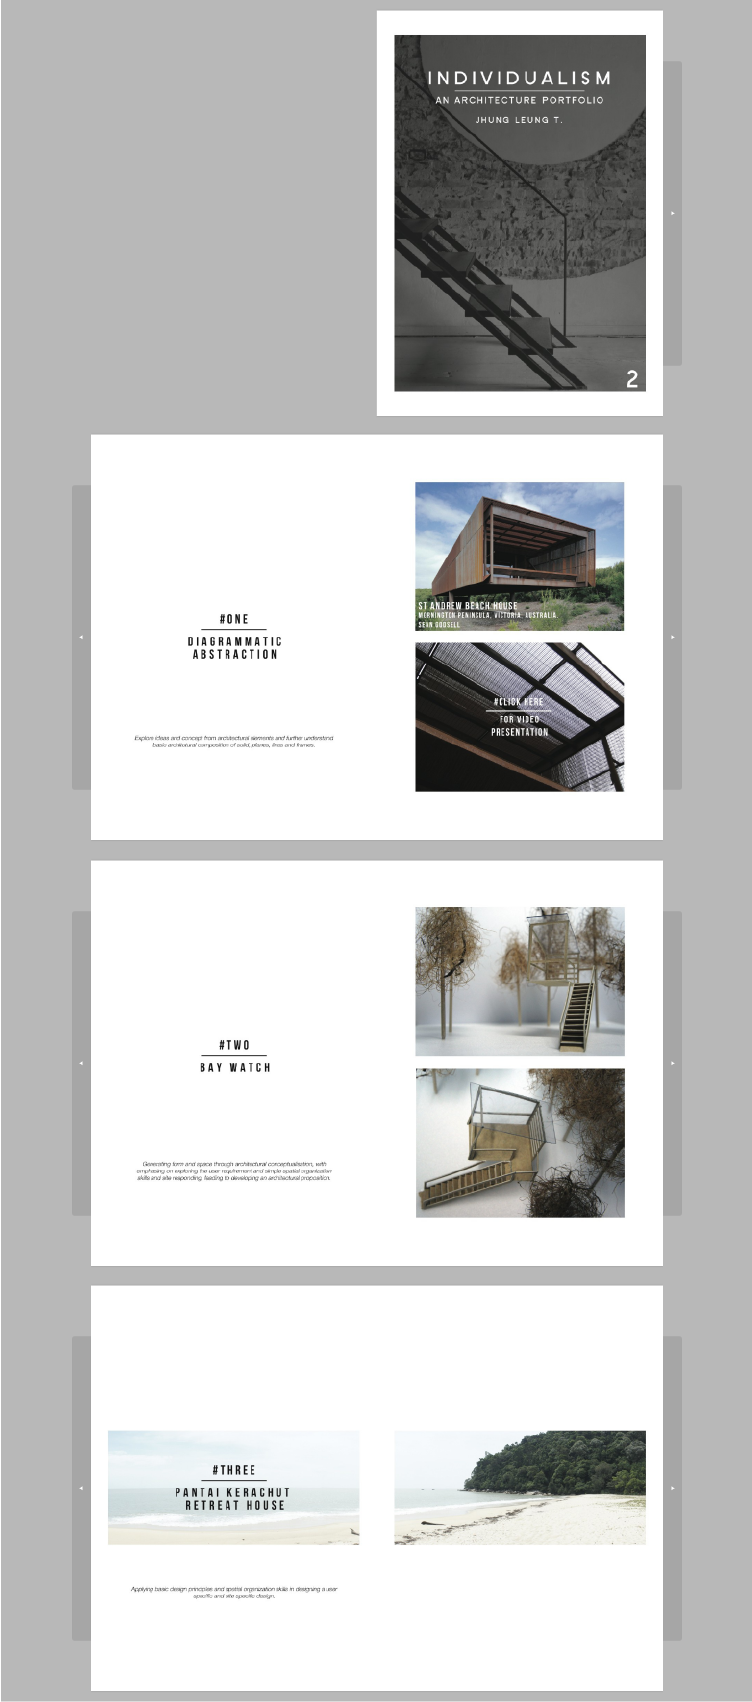 Architecture portfolio by Jhung Leung It features